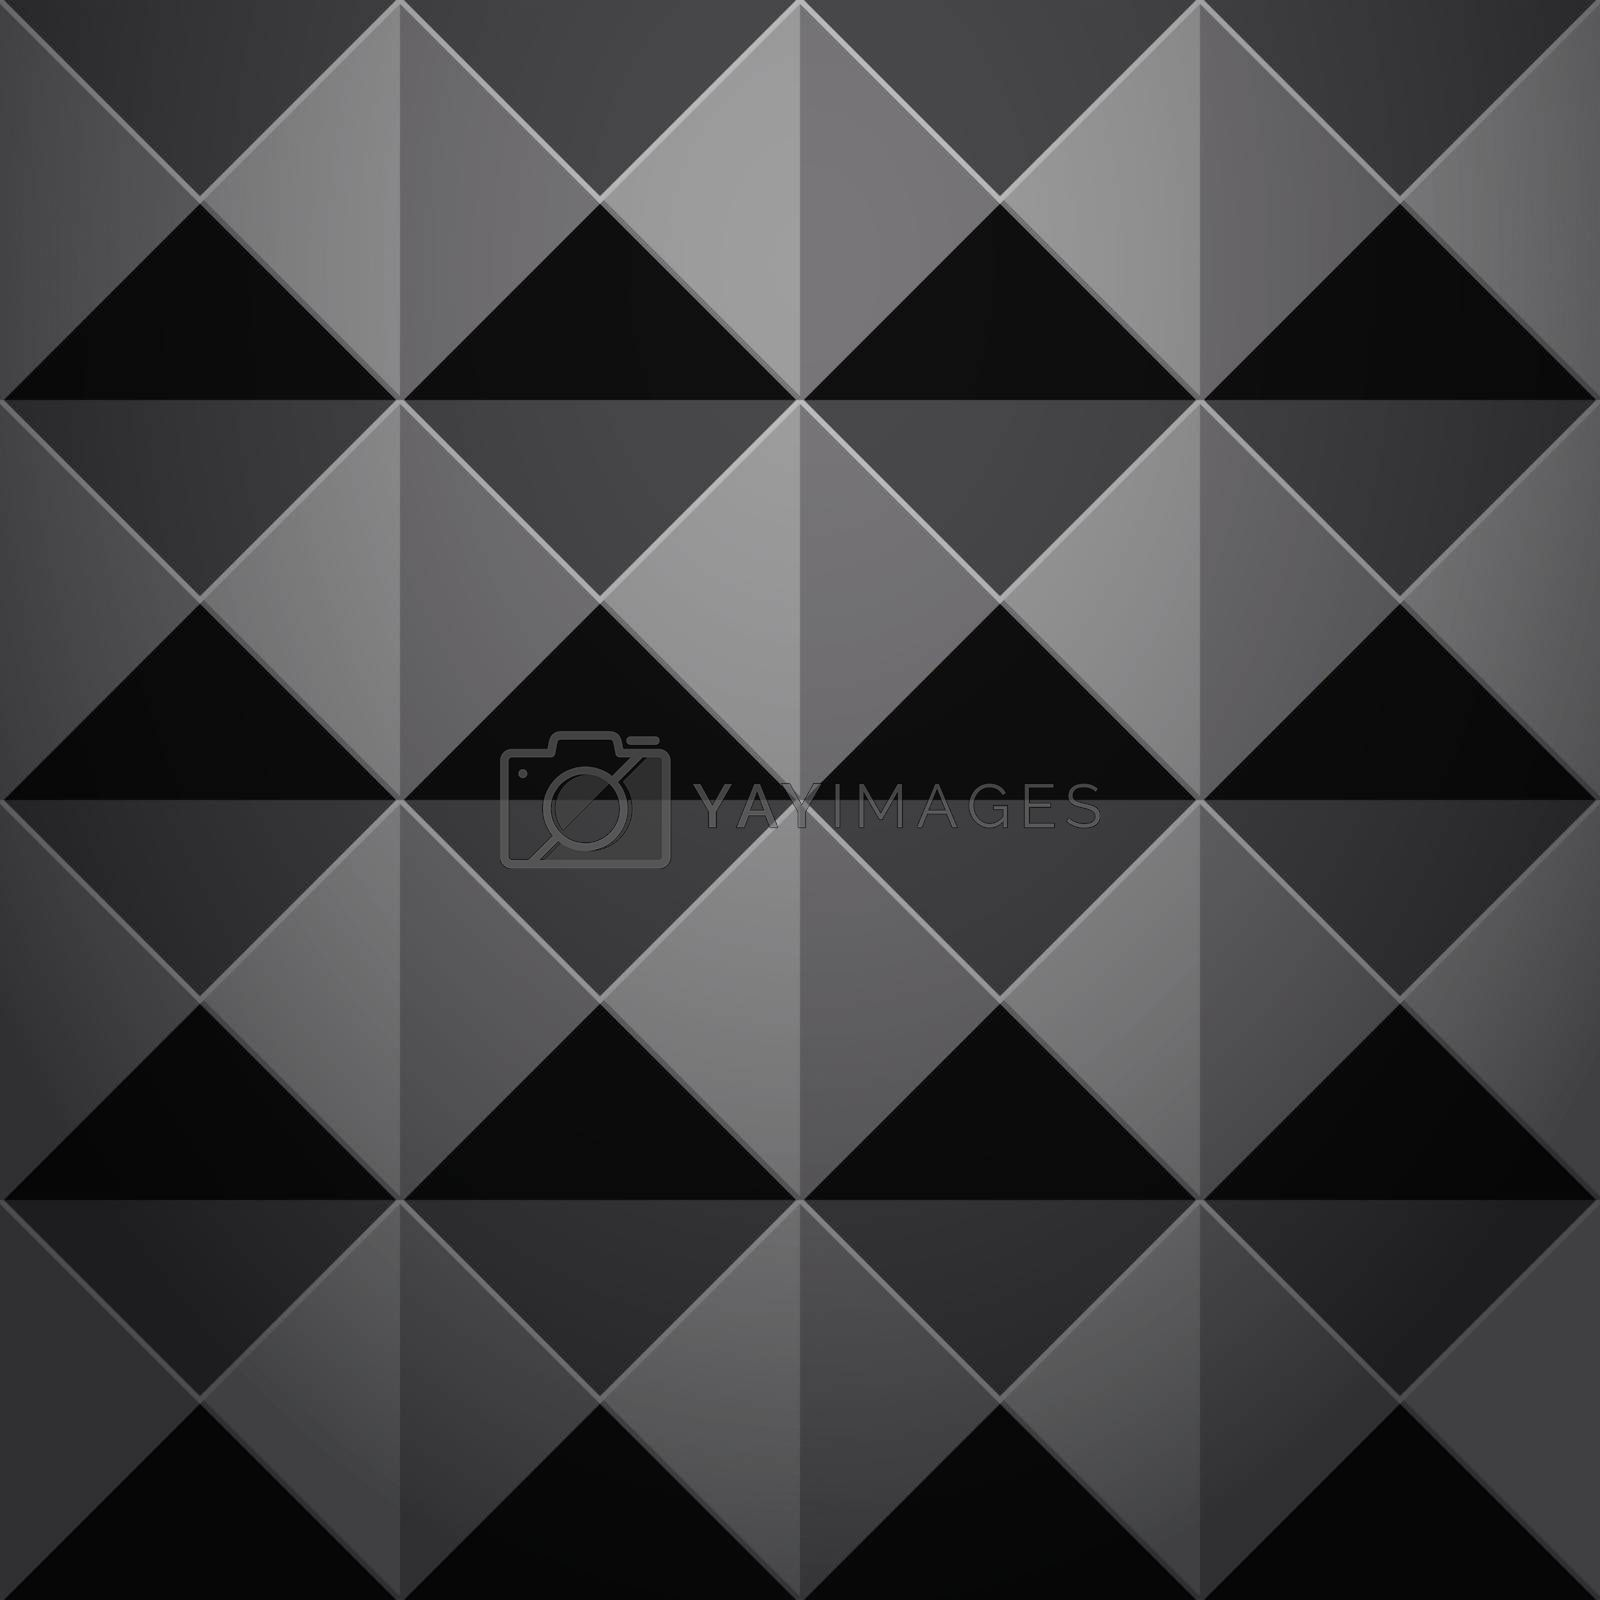 Abstract 3d dark geometric background. Simple clean dark background texture. 3D Vector interior wall panel pattern. Seamless texture.